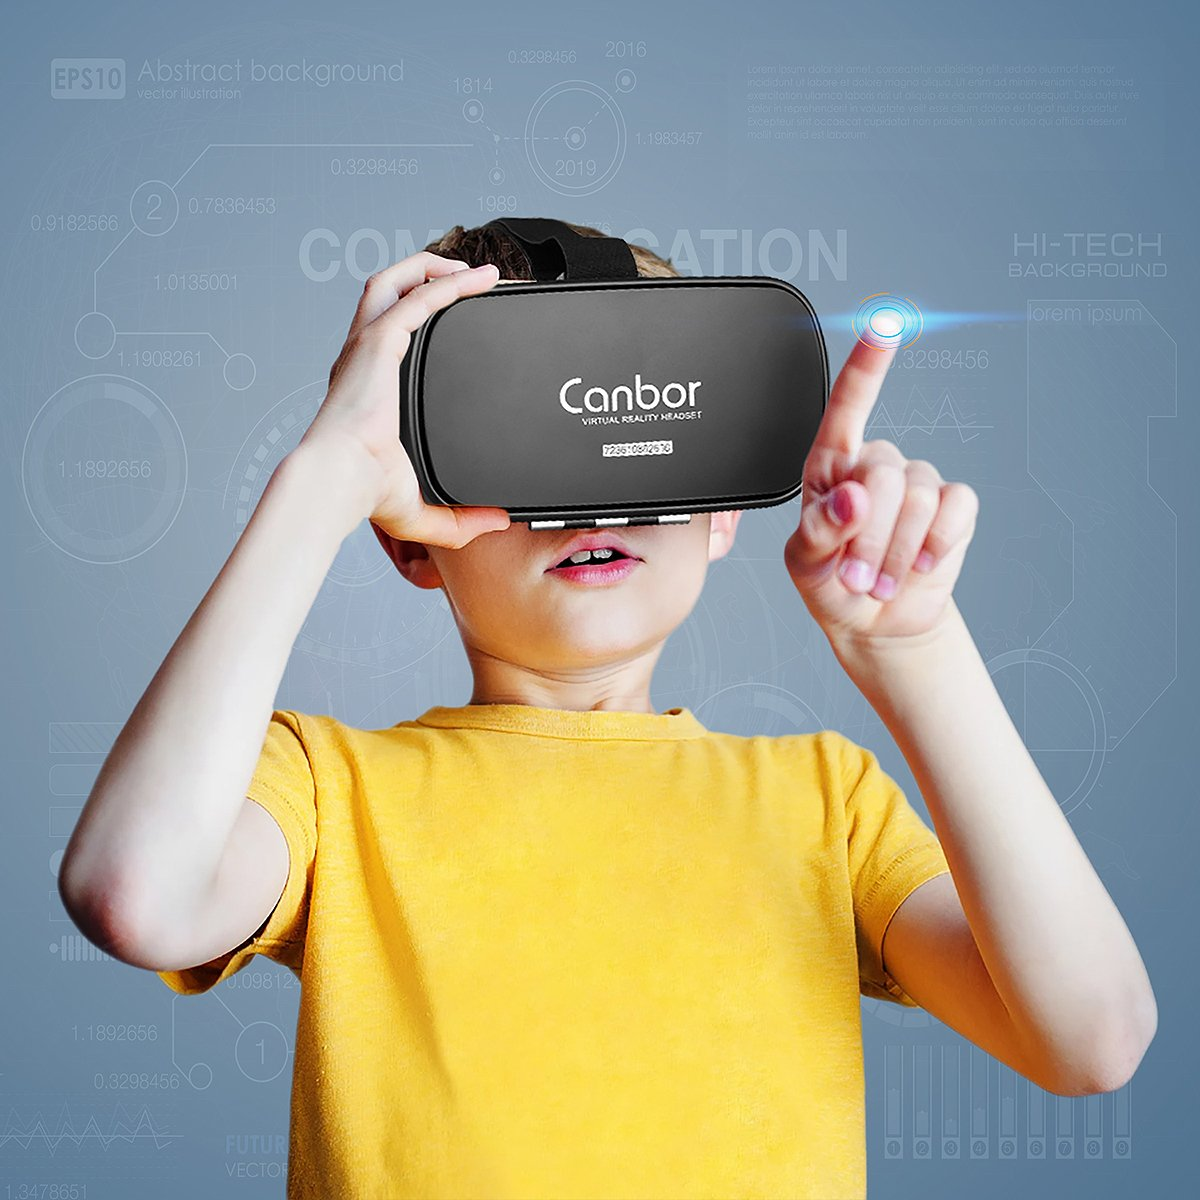 VR Headset, Canbor VR Goggles Virtual Reality Headset VR Glasses for 3D Video Movies Games for Apple iPhone, Samsung Huwei HTC More Smartphones by Canbor (Image #7)